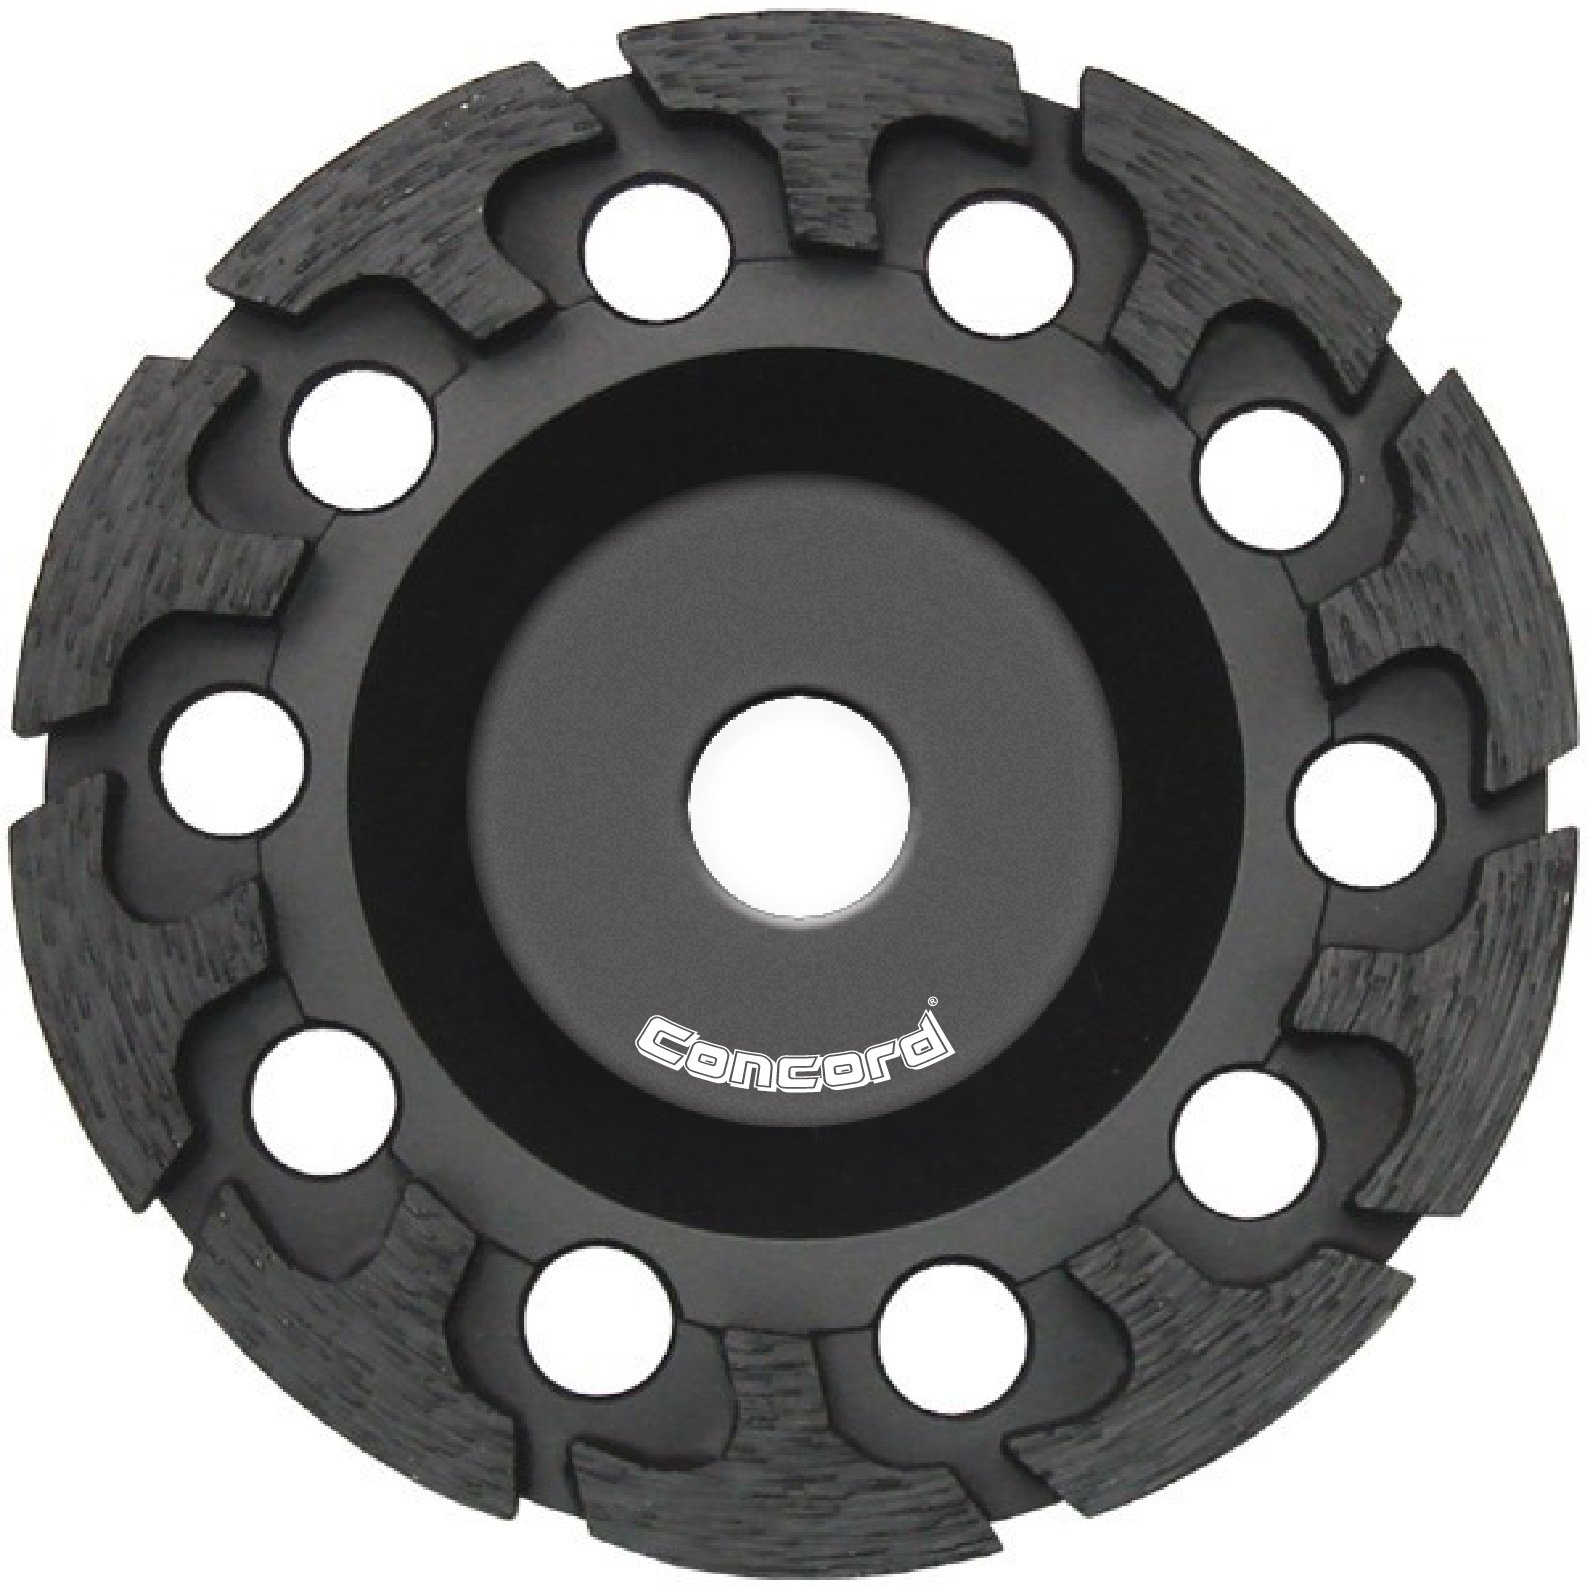 Concord Blades GCH045FHP 4.5 Inch T-Turbo Diamond Cup Wheel with 5/8''-11 Thread by Concord Blades